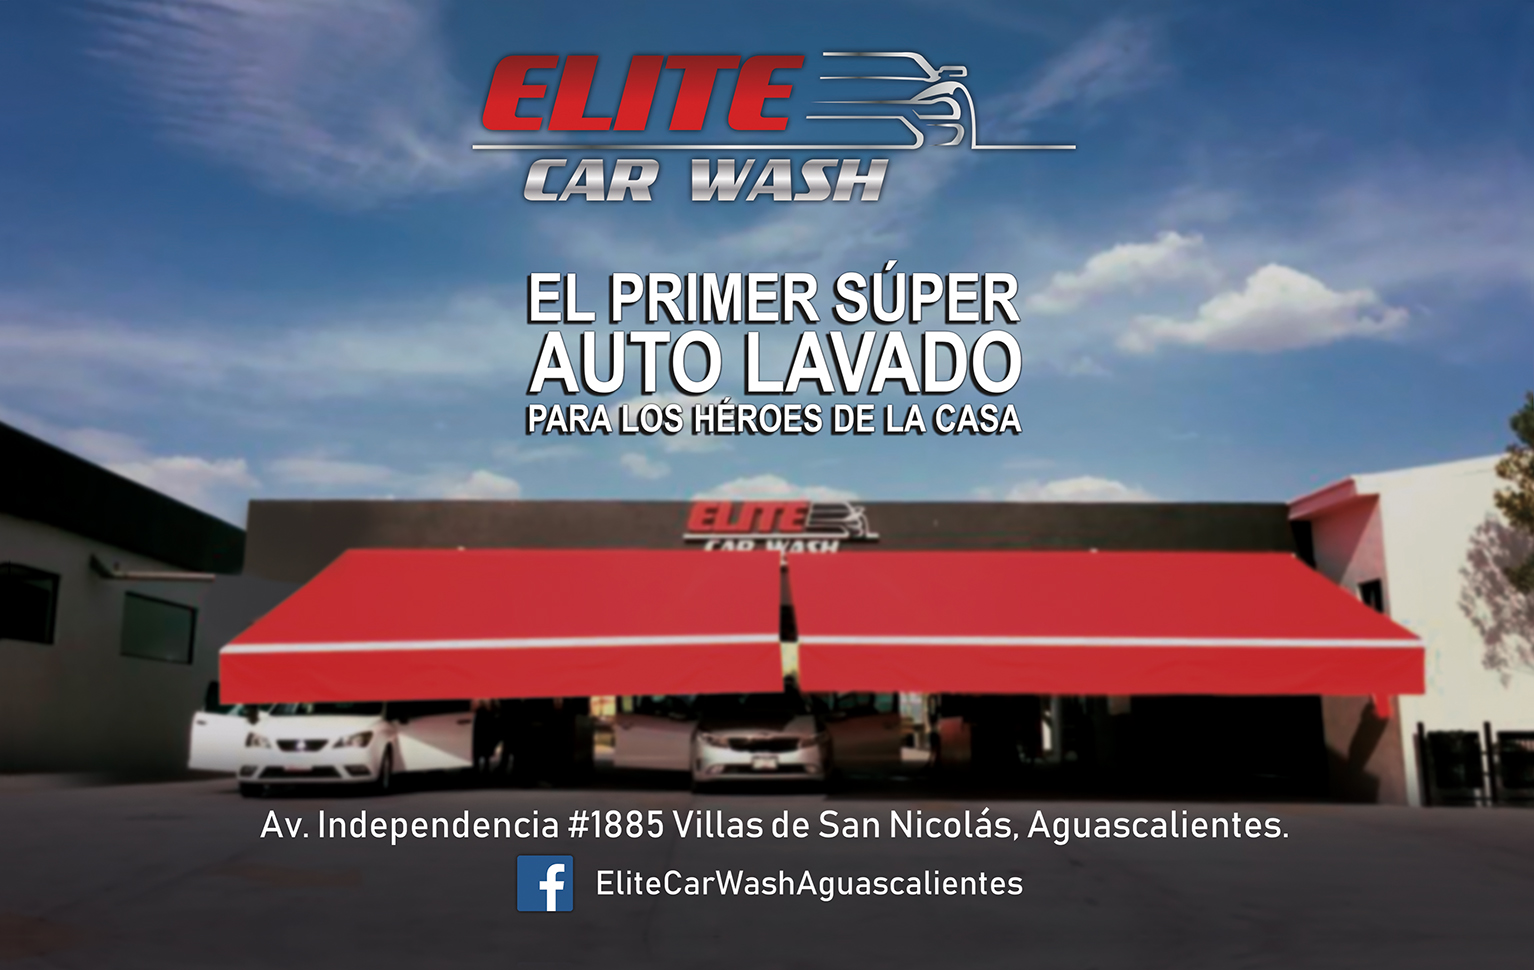 ELITE CAR WASH